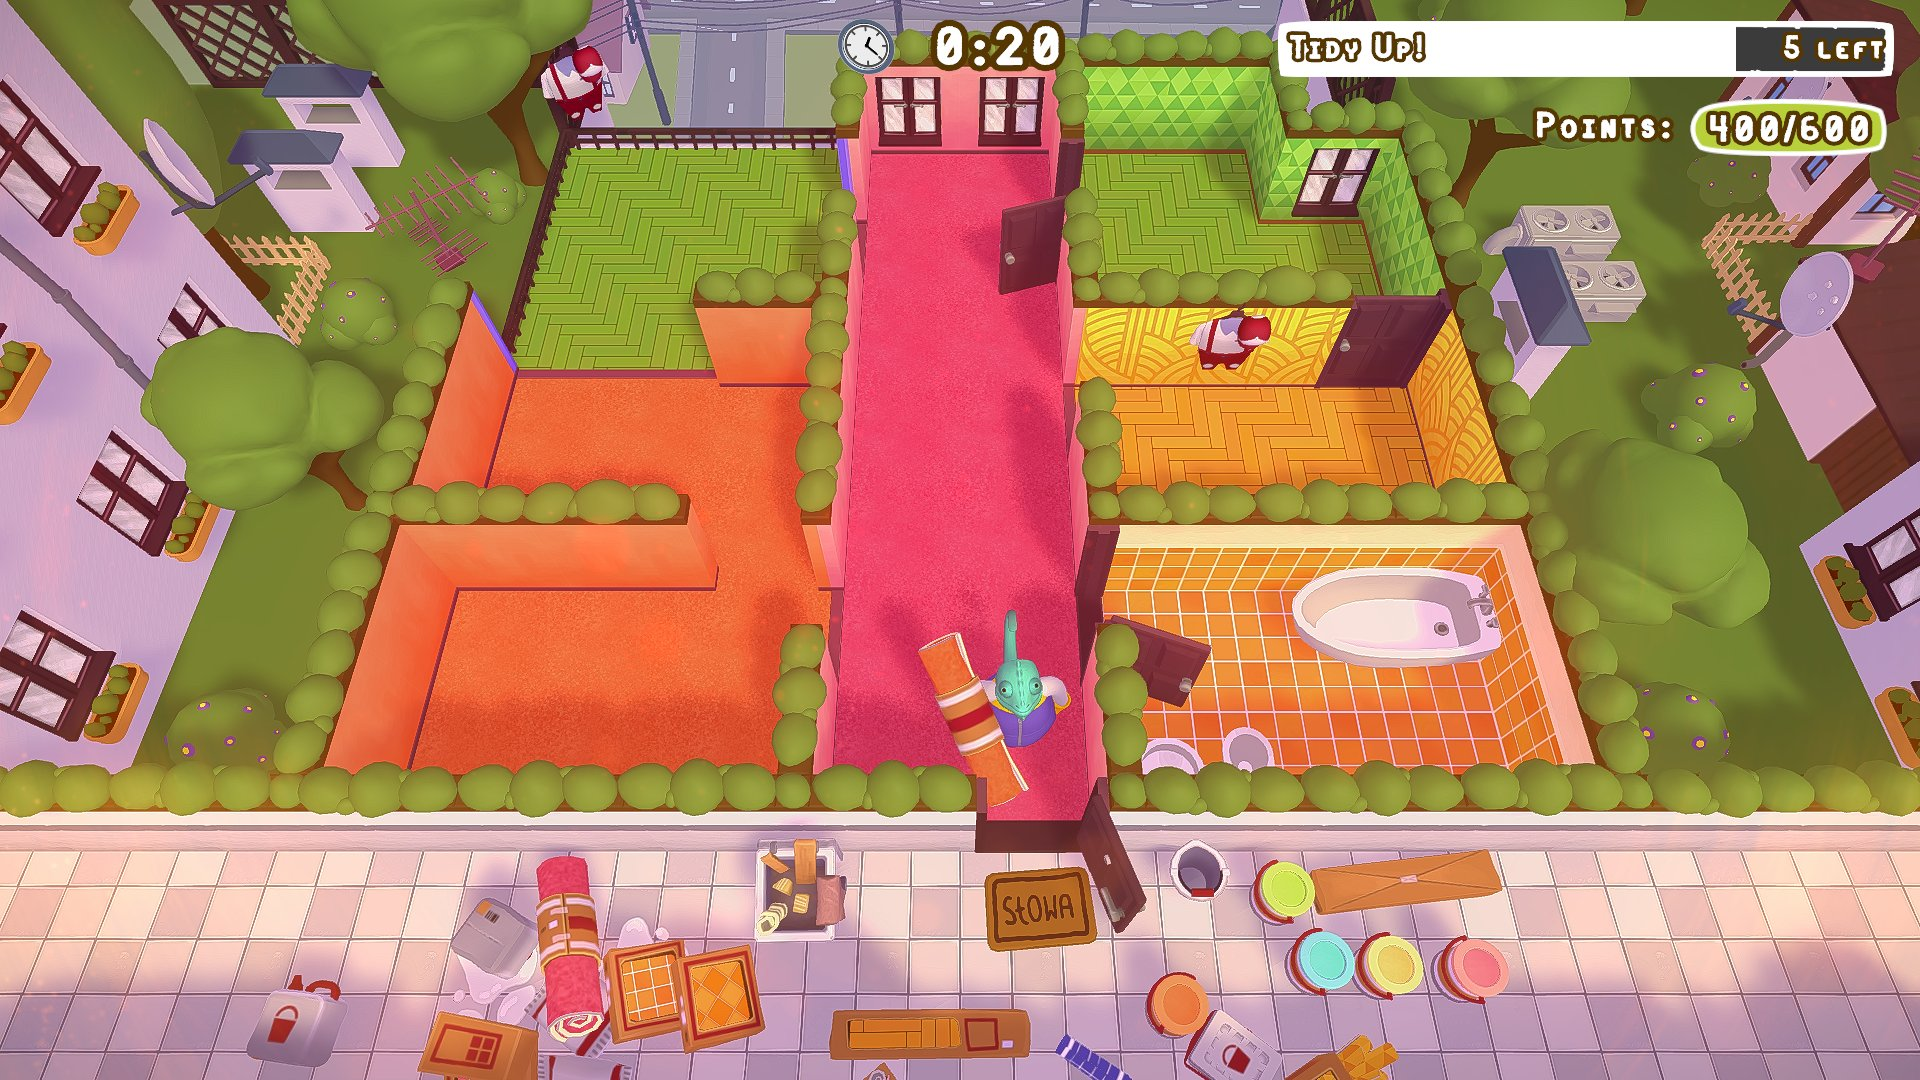 A screenshot from Tools Up! with a player carrying carpet down a garish, pink hallway.